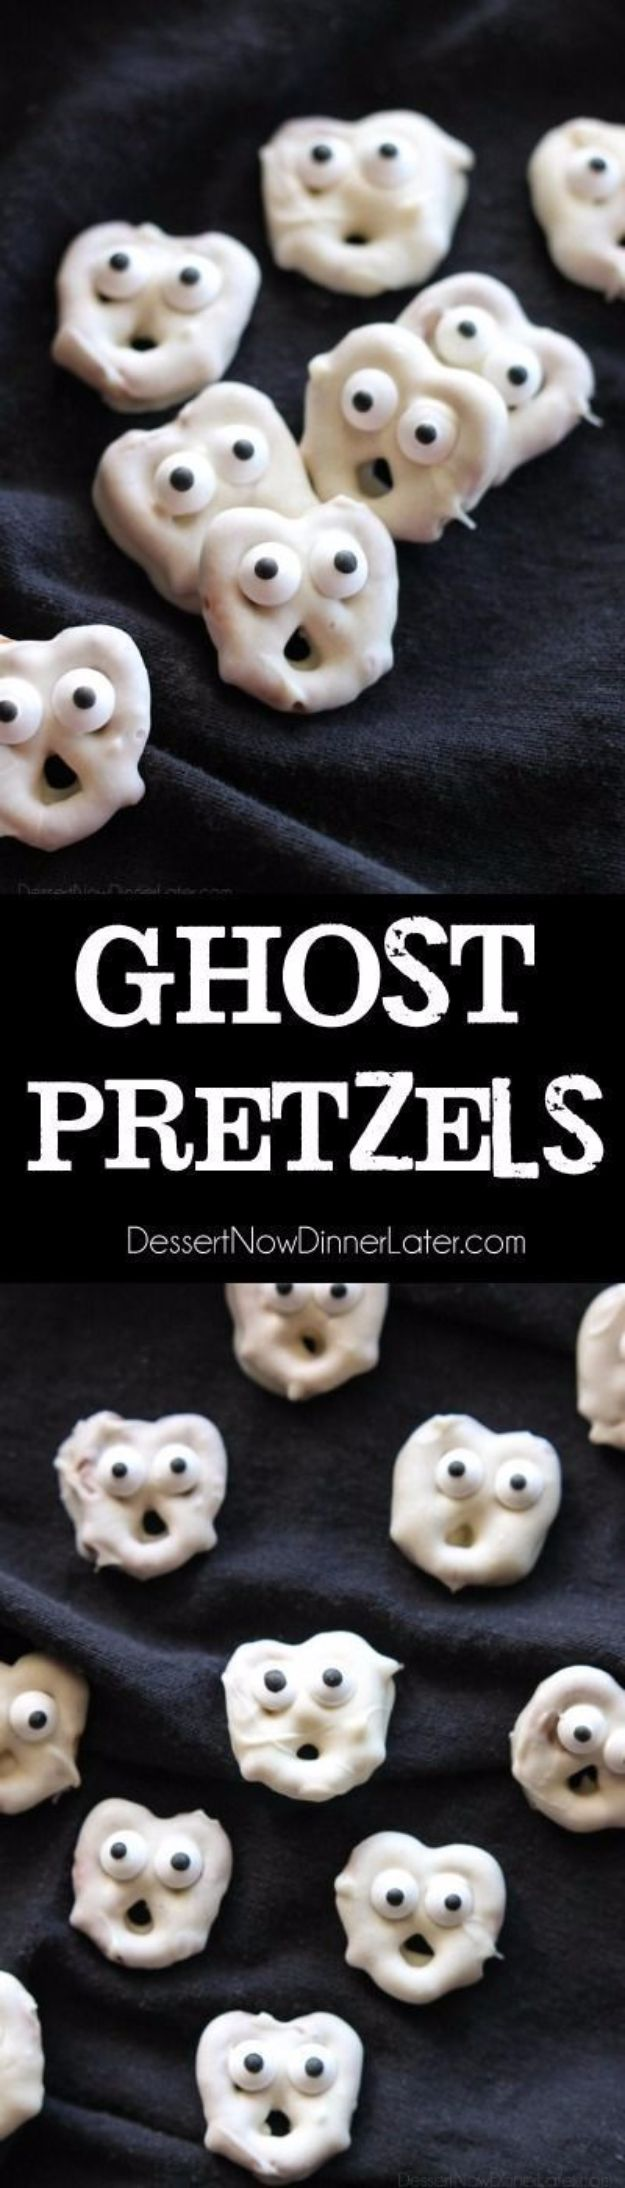 Best Halloween Party Snacks - Ghost Pretzels - Healthy Ideas for Kids for School, Teens and Adults - Easy and Quick Recipes and Idea for Dips, Chips, Spooky Cookies and Treats - Appetizers and Finger Foods Made With Vegetables, No Candy, Cheap Food, Scary DIY Party Foods With Step by Step Tutorials http://diyjoy.com/halloween-party-snacks